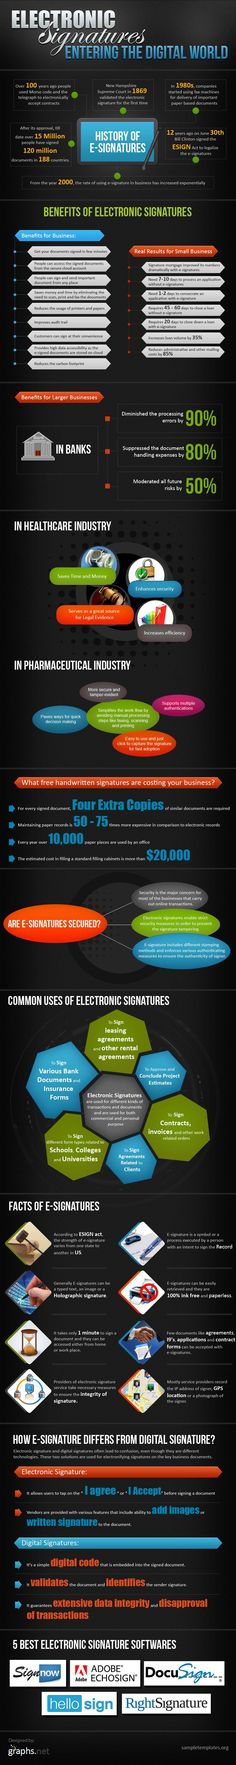 #INFOgraphic > e-Signature Overview: An electronic signature can  improve the efficiency of work in different industries such as banking, pharmaceutical and healthcare industry. Do you know the difference between digital signature and e-signature?  > http://infographicsmania.com/e-signature-overview/